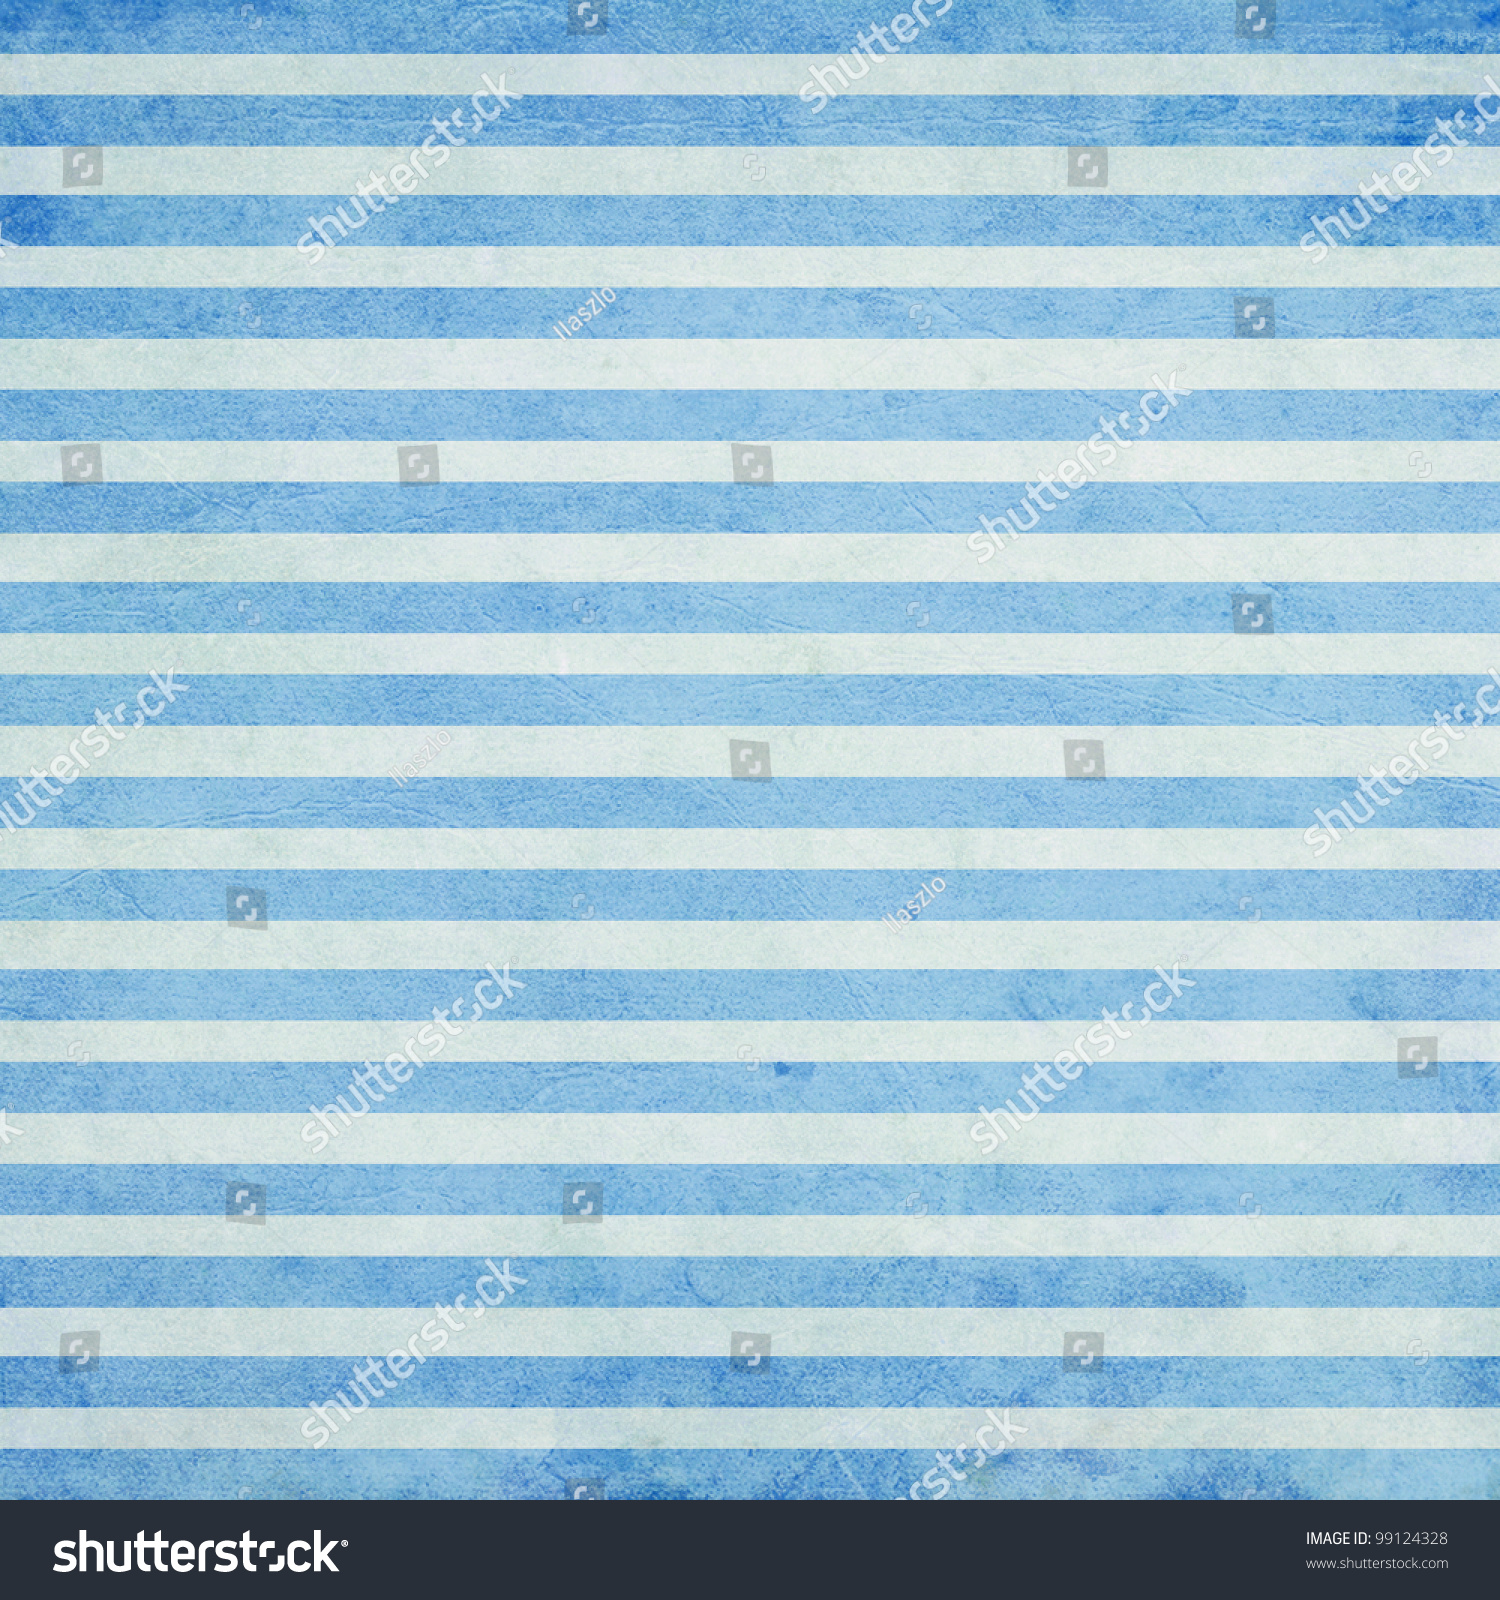 Shabby Textile Background With Colorful Blue And White